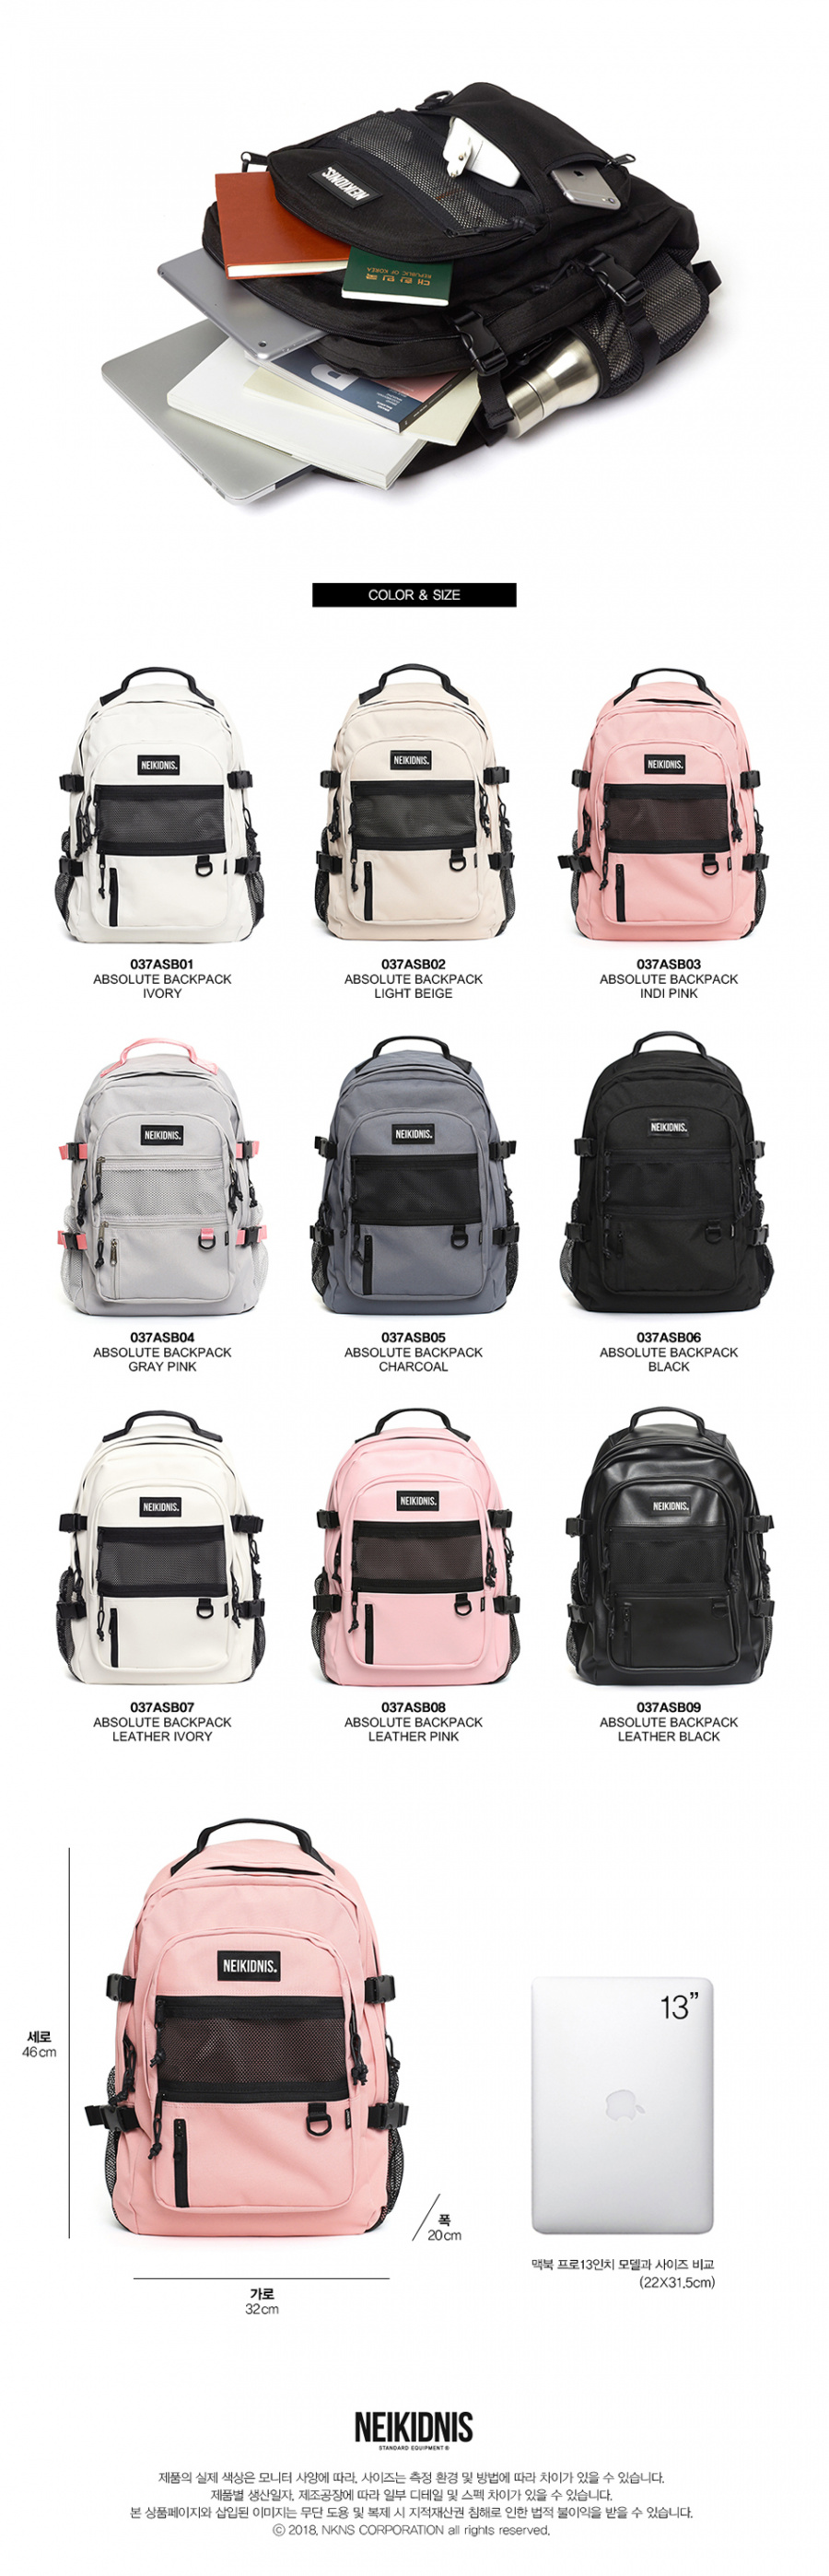 네이키드니스(NEIKIDNIS) ABSOLUTE BACKPACK /  INDI PINK